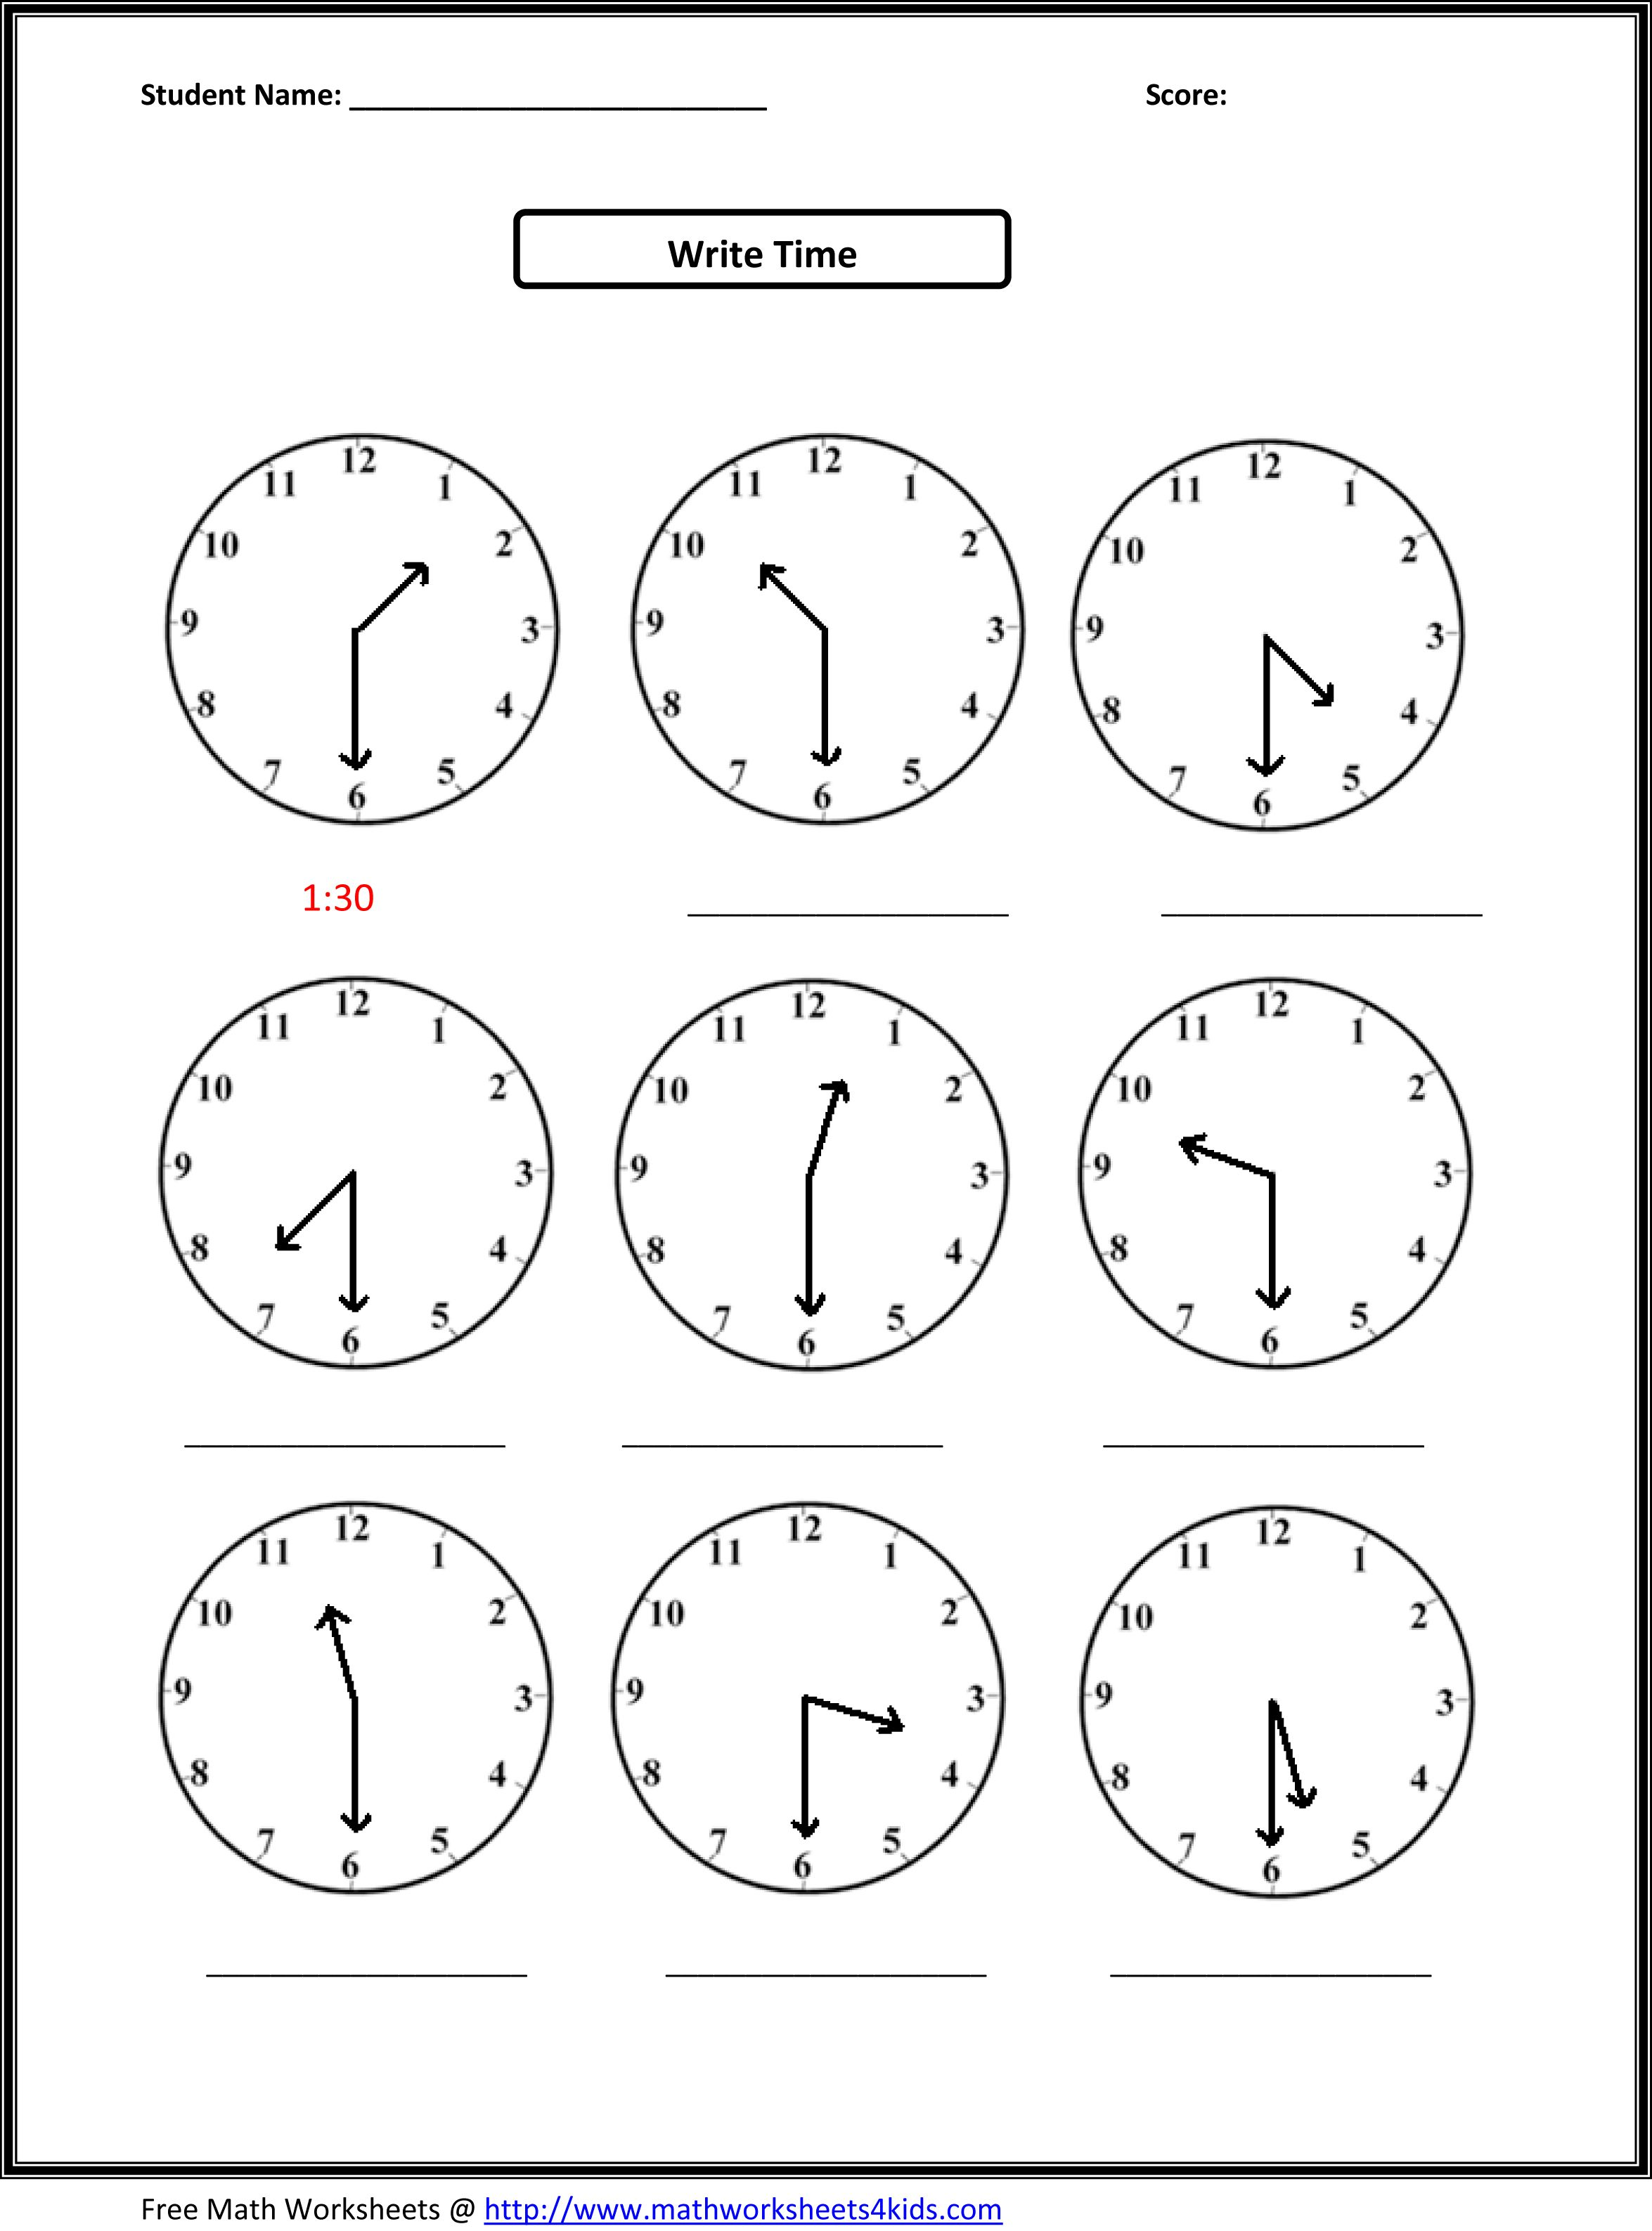 Proatmealus  Nice Worksheet On Time For Grade   Reocurent With Lovable Free Printable Telling Time Worksheets Nd Grade  Reocurent With Charming Cpo Science Worksheets Also Numbers In Spanish Worksheet In Addition Operations With Scientific Notation Worksheets And Freedom Writers Worksheet As Well As Binomials Worksheet Additionally Phonograms Worksheets From Reocurentcom With Proatmealus  Lovable Worksheet On Time For Grade   Reocurent With Charming Free Printable Telling Time Worksheets Nd Grade  Reocurent And Nice Cpo Science Worksheets Also Numbers In Spanish Worksheet In Addition Operations With Scientific Notation Worksheets From Reocurentcom